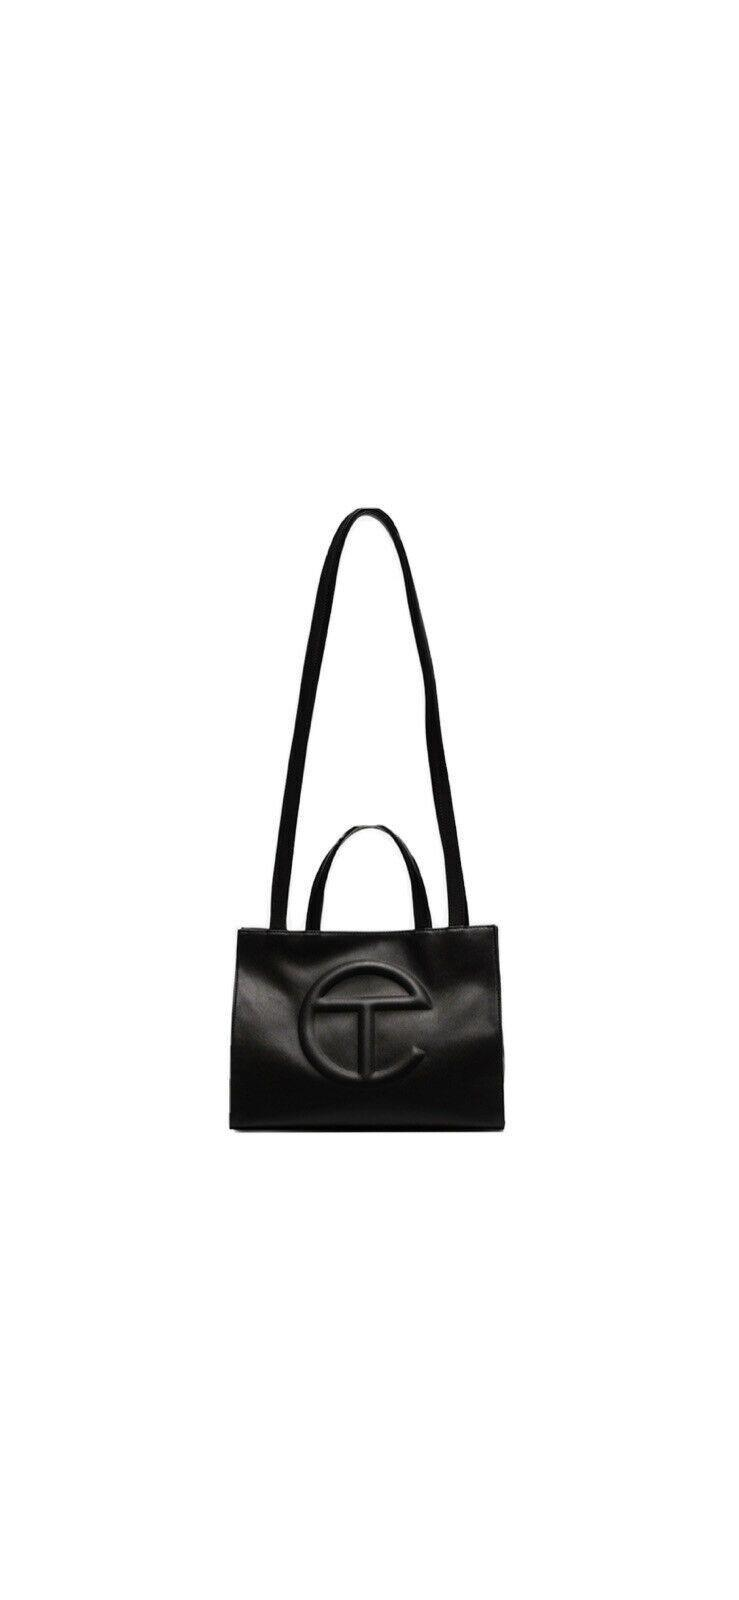 """<p><strong>Telfar</strong></p><p>ebay.com</p><p><strong>$385.00</strong></p><p><a href=""""https://go.redirectingat.com?id=74968X1596630&url=https%3A%2F%2Fwww.ebay.com%2Fitm%2F274433484383&sref=https%3A%2F%2Fwww.harpersbazaar.com%2Ffashion%2Ffashion-week%2Fg30766342%2Ffall-2020-bag-trends%2F"""" rel=""""nofollow noopener"""" target=""""_blank"""" data-ylk=""""slk:Shop Now"""" class=""""link rapid-noclick-resp"""">Shop Now</a></p><p>While you're waiting on a restock, you can try your hand at the resale market. </p>"""